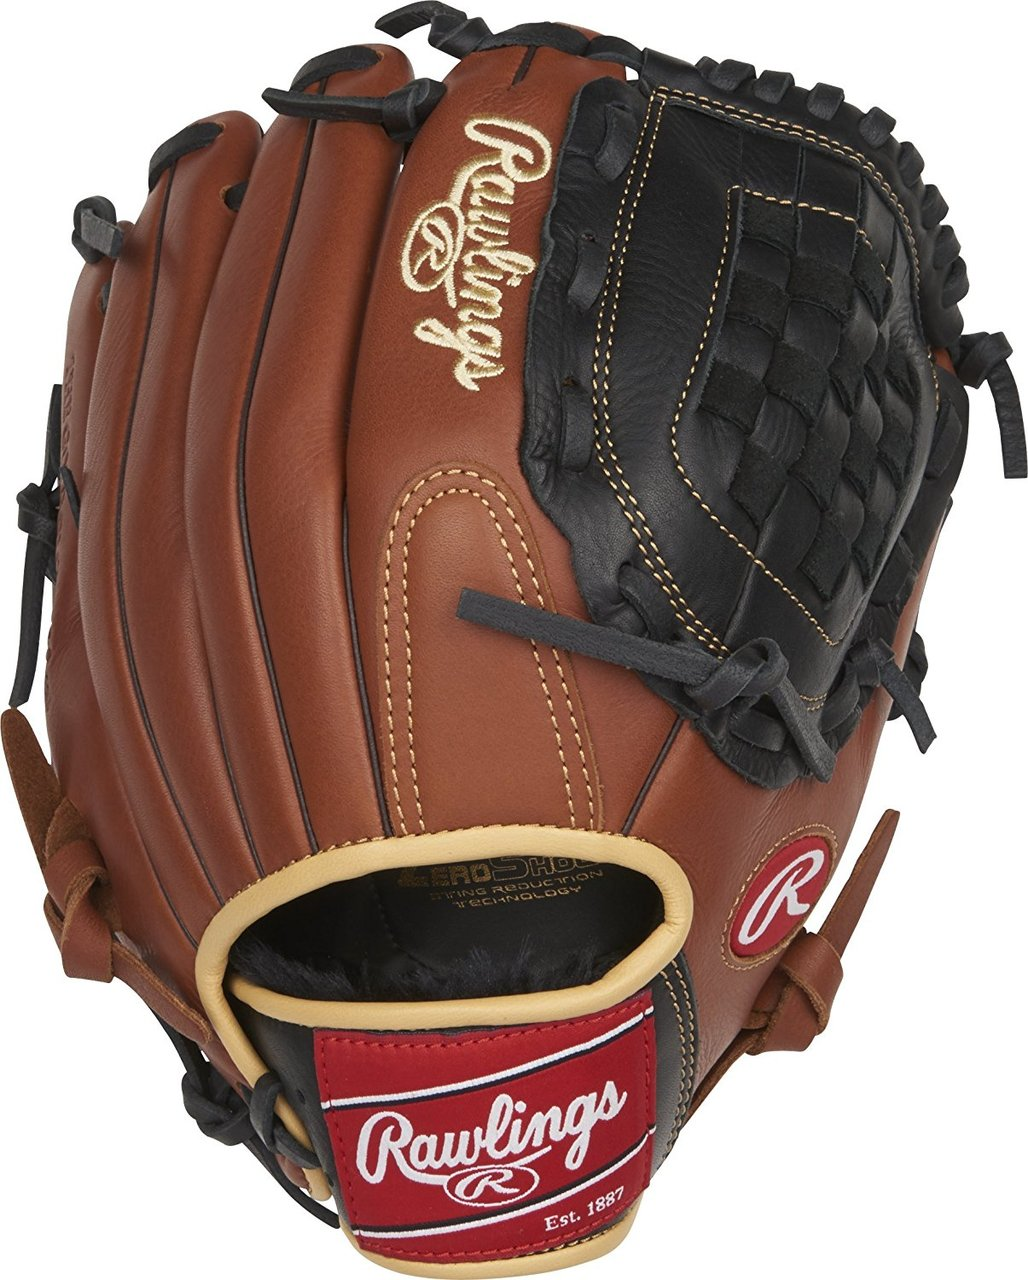 rawlings-sandlot-sl1200b-baseball-glove-12-right-hand-throw S1200B-RightHandThrow Rawlings 083321369391 The Sandlot Series gloves feature an oiled pull-up leather that gives